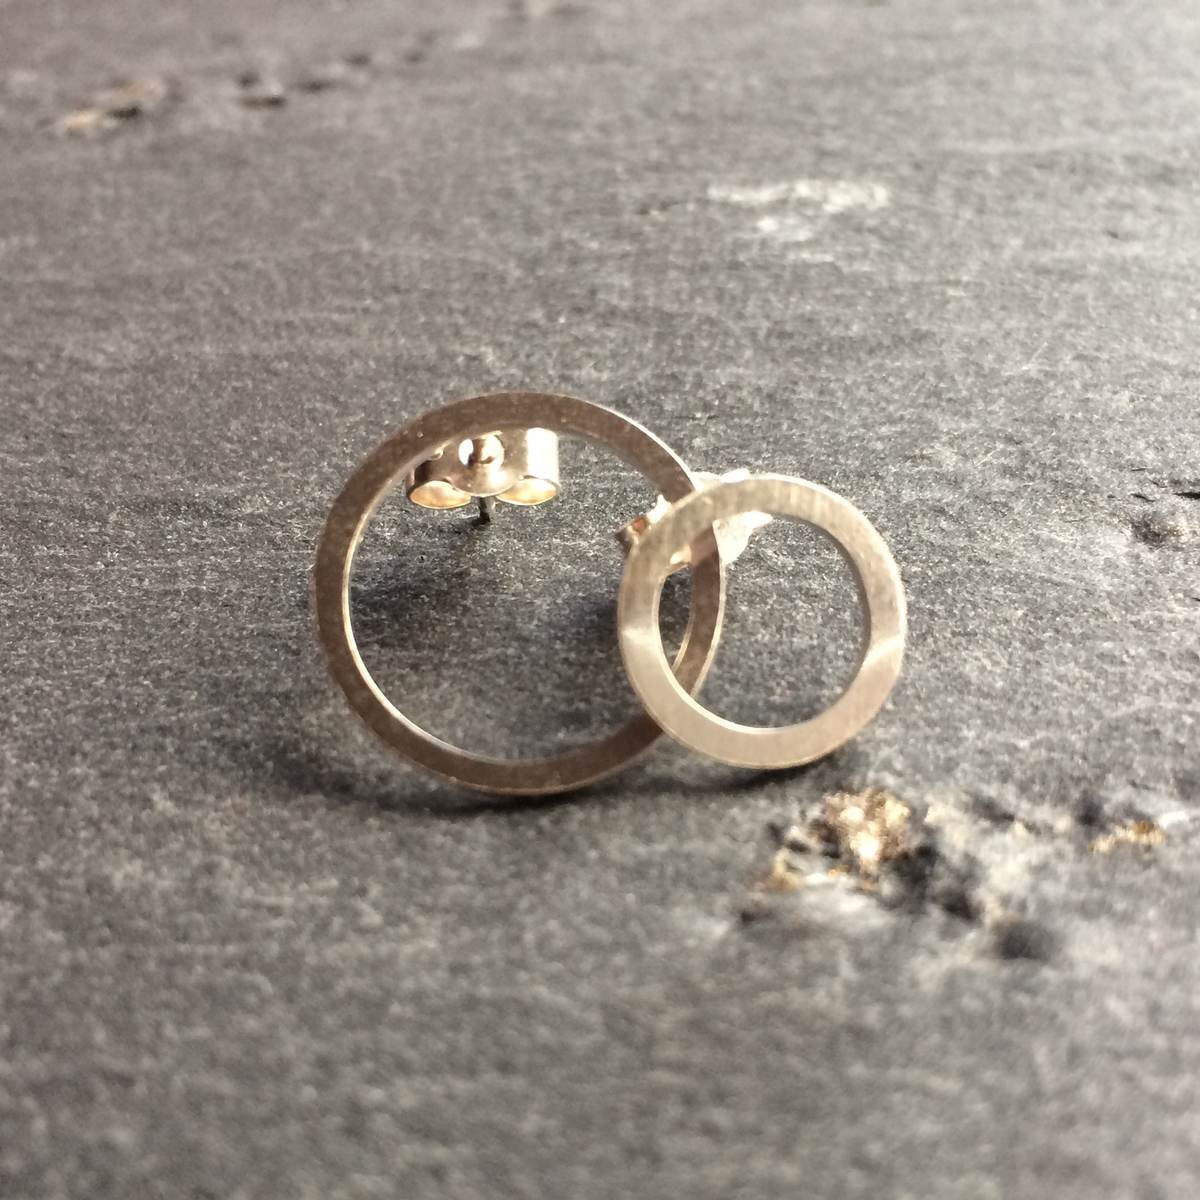 Mismatched circle stud earrings